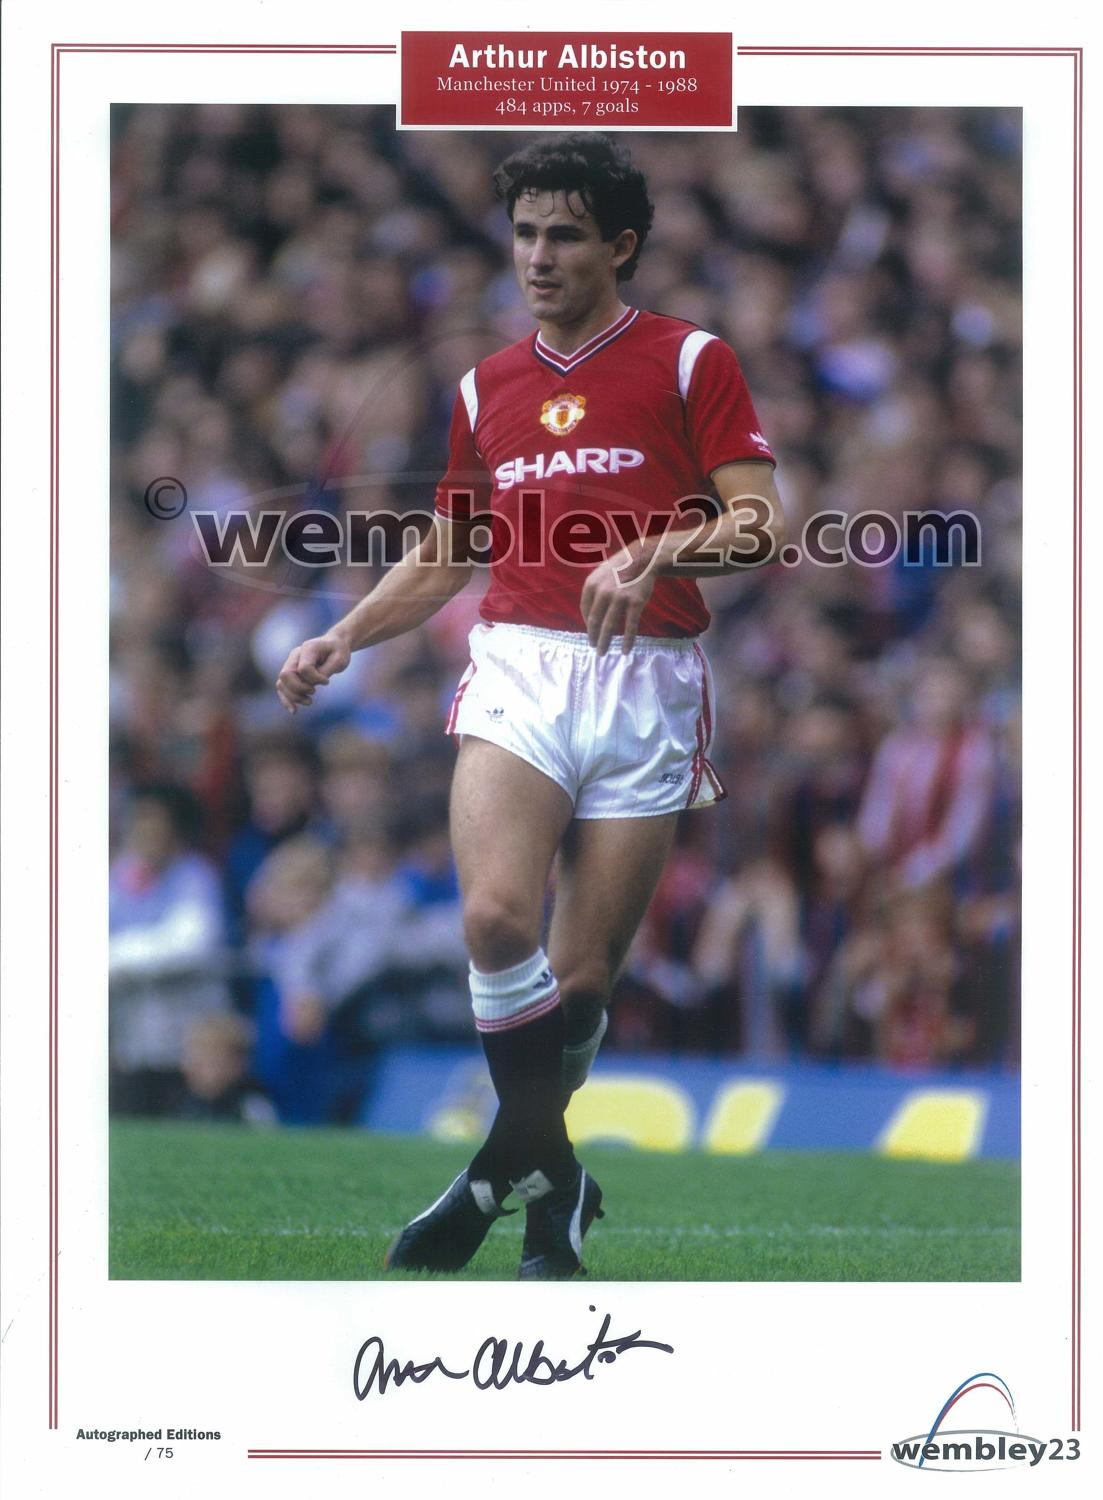 Arthur Albiston Manchester United